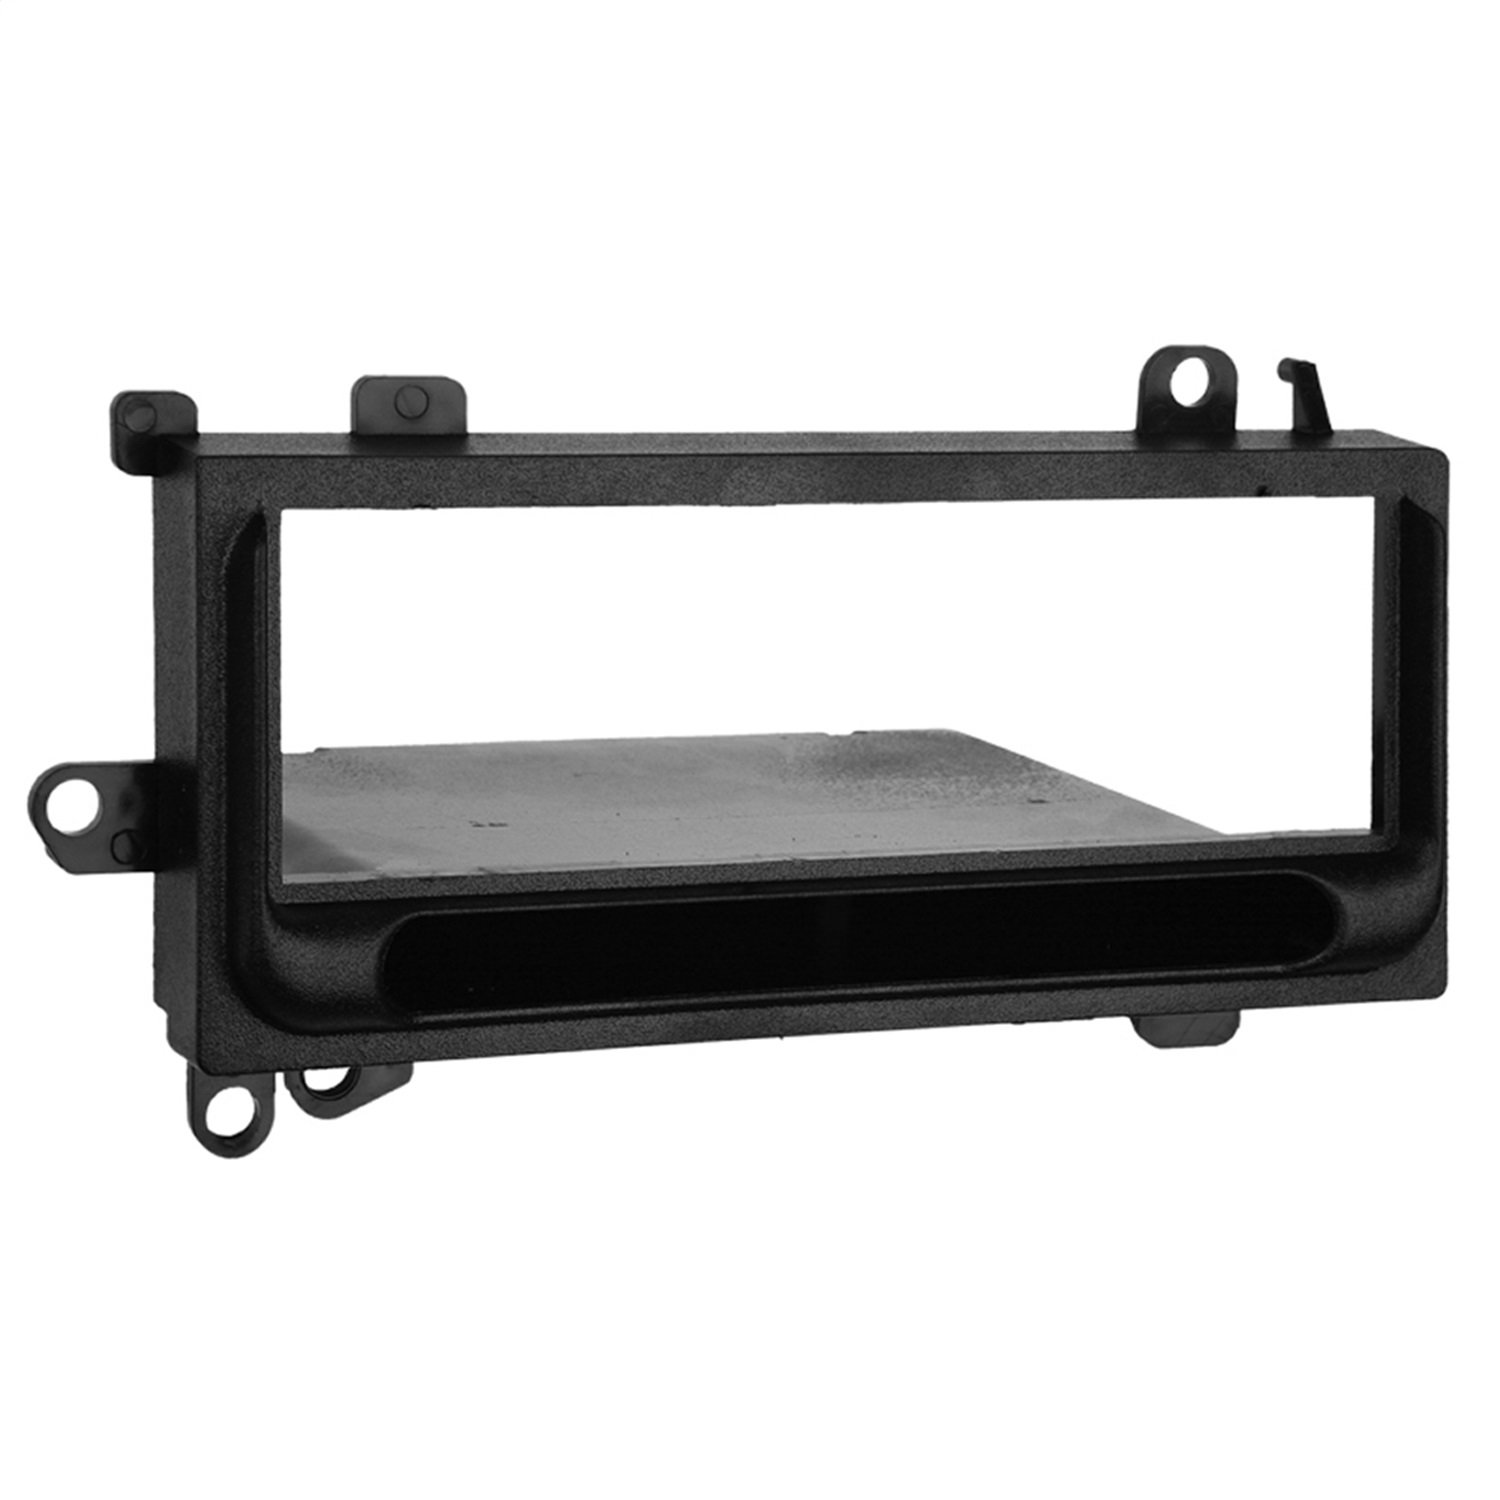 Metra 99-6000 Single DIN Installation Kit for 1974-2003 Chrysler, Dodge, Eagle, Jeep, and Plymouth Vehicles